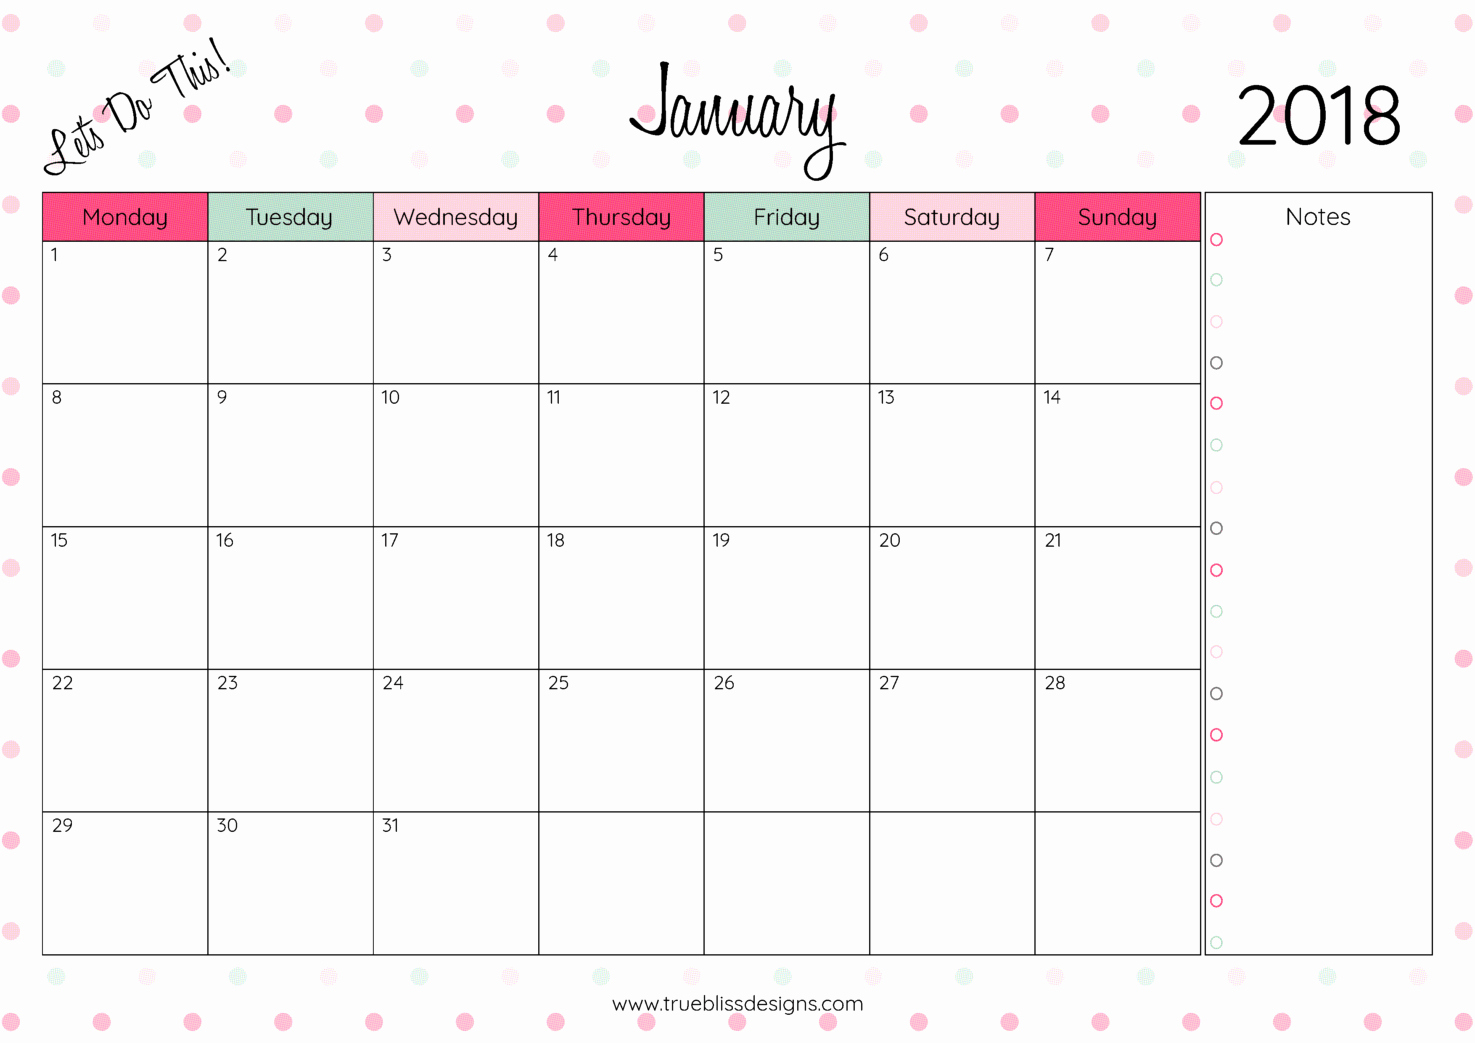 Month by Month Calendar Template Fresh Printable Monthly Calendar 2018 Printable Pages